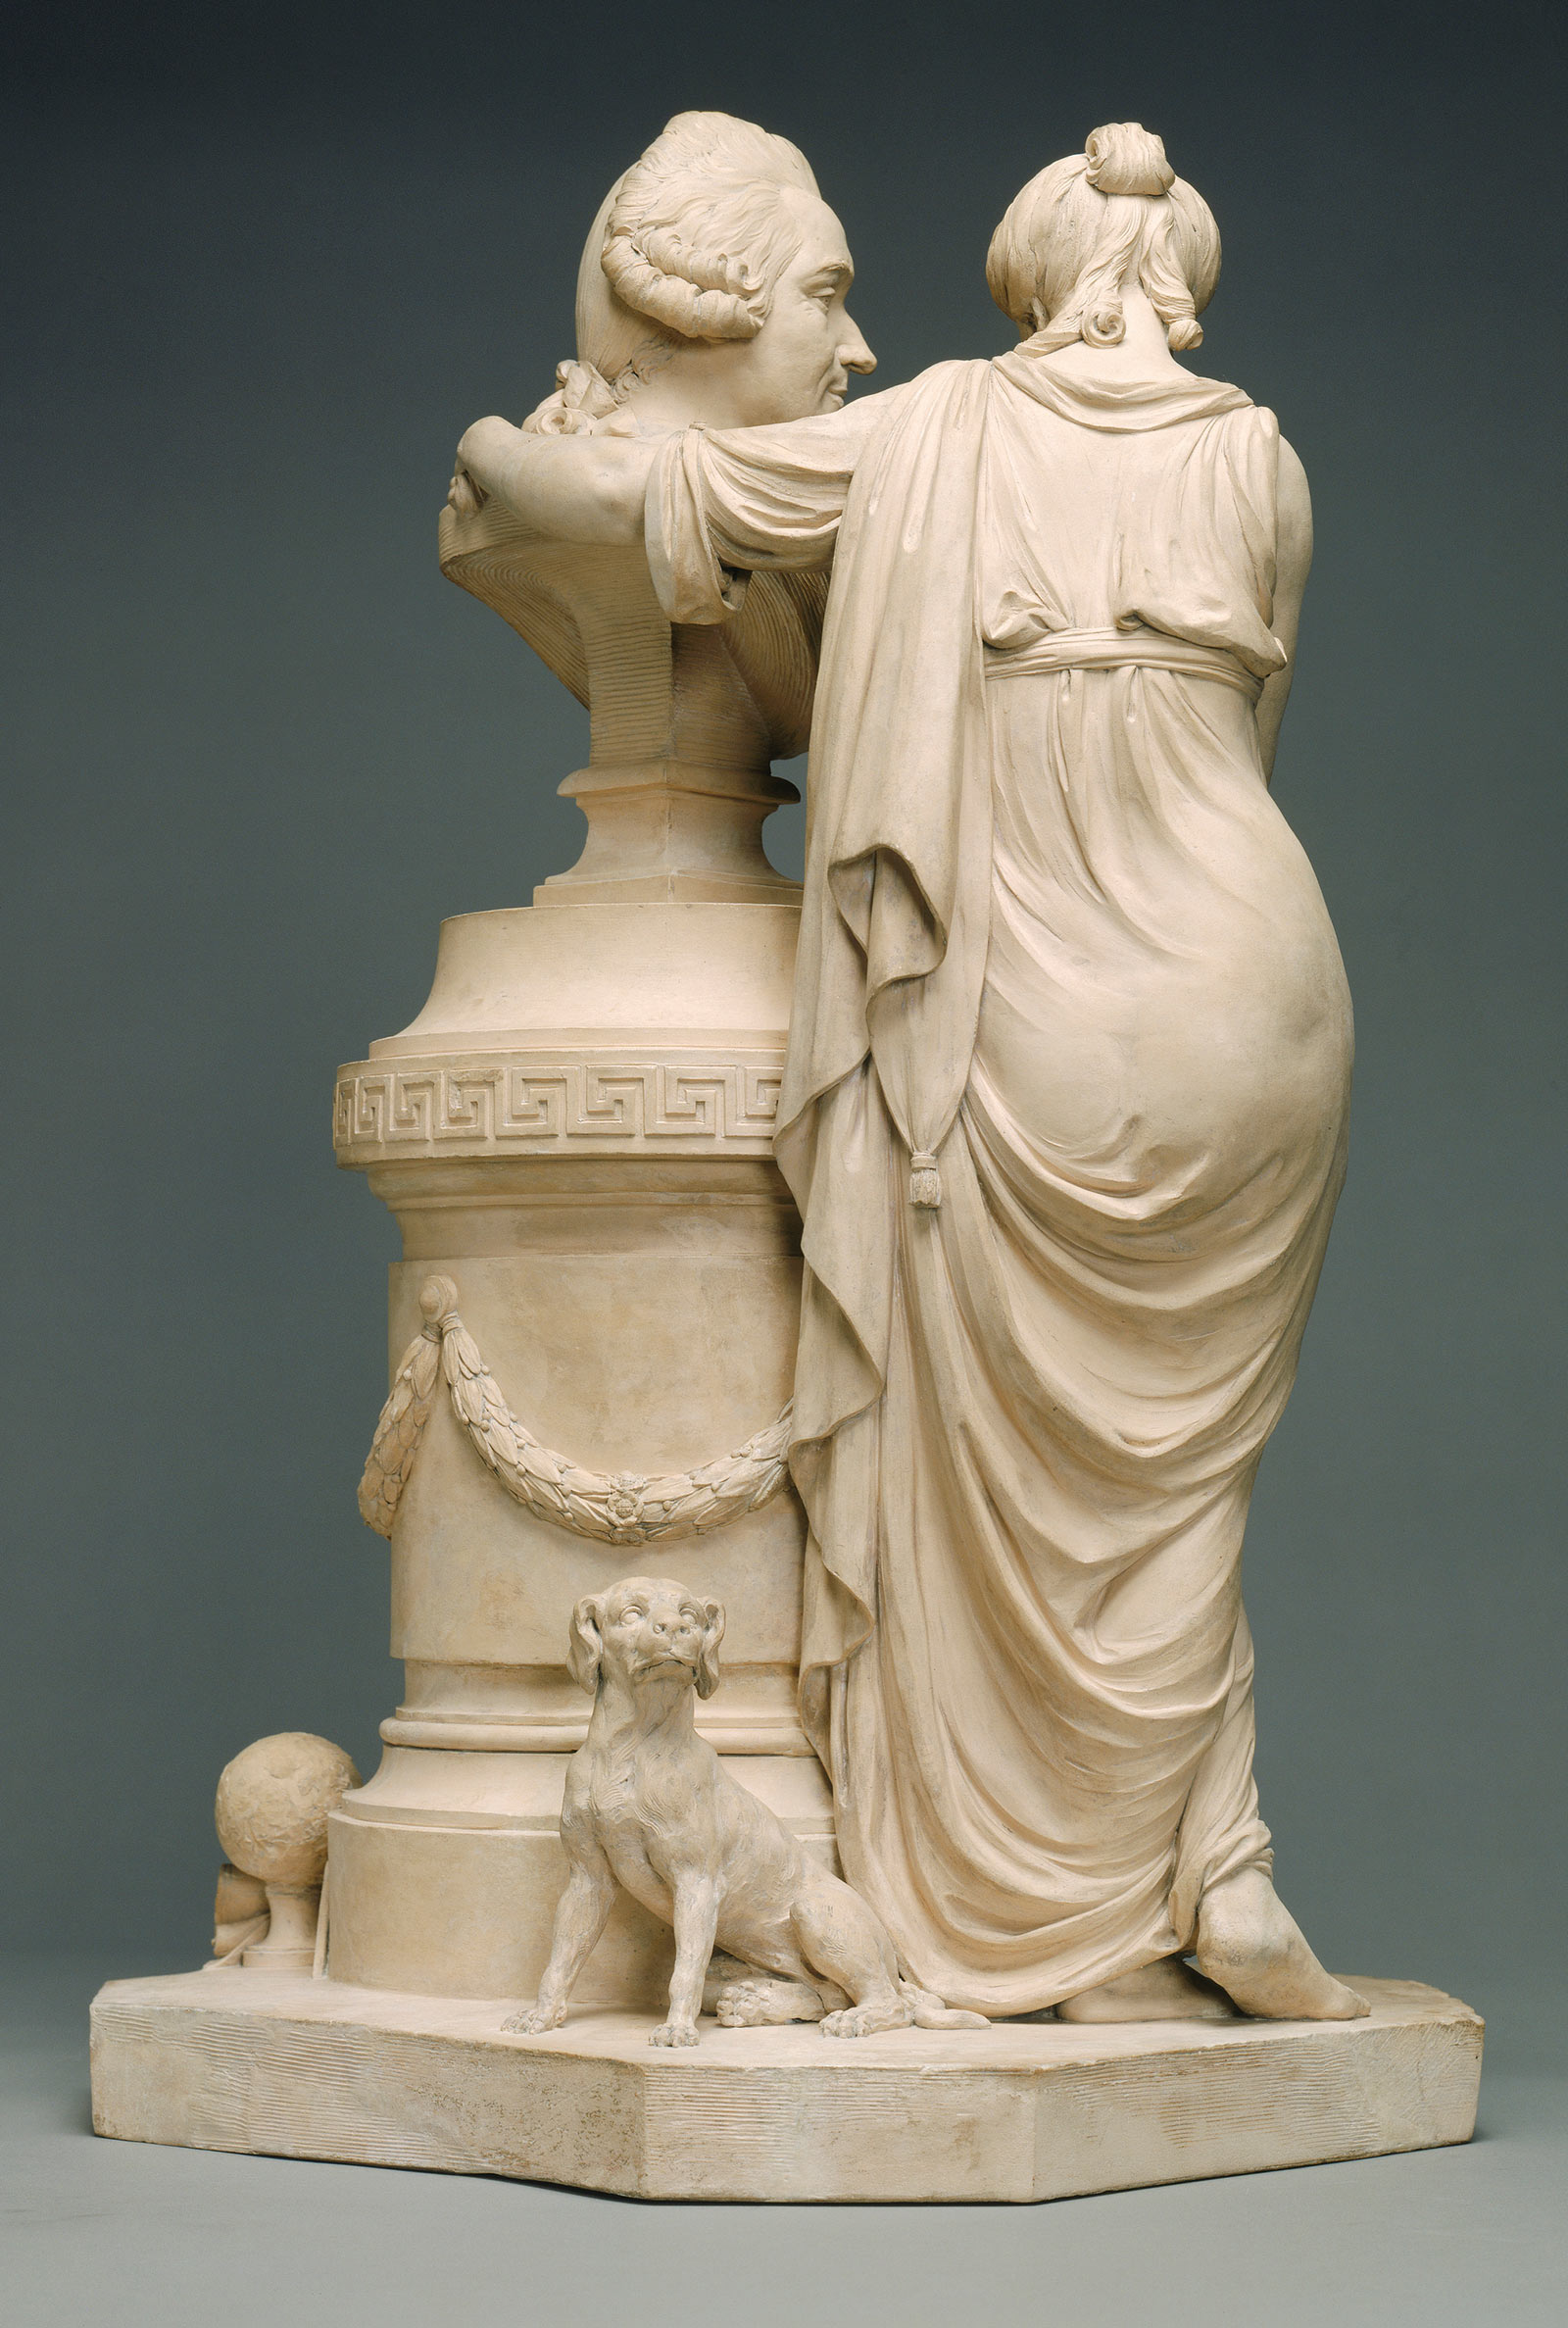 Backside of a woman in a toga standing next to the bust of a man on a tall pedestal, with a small dog standing behind them.